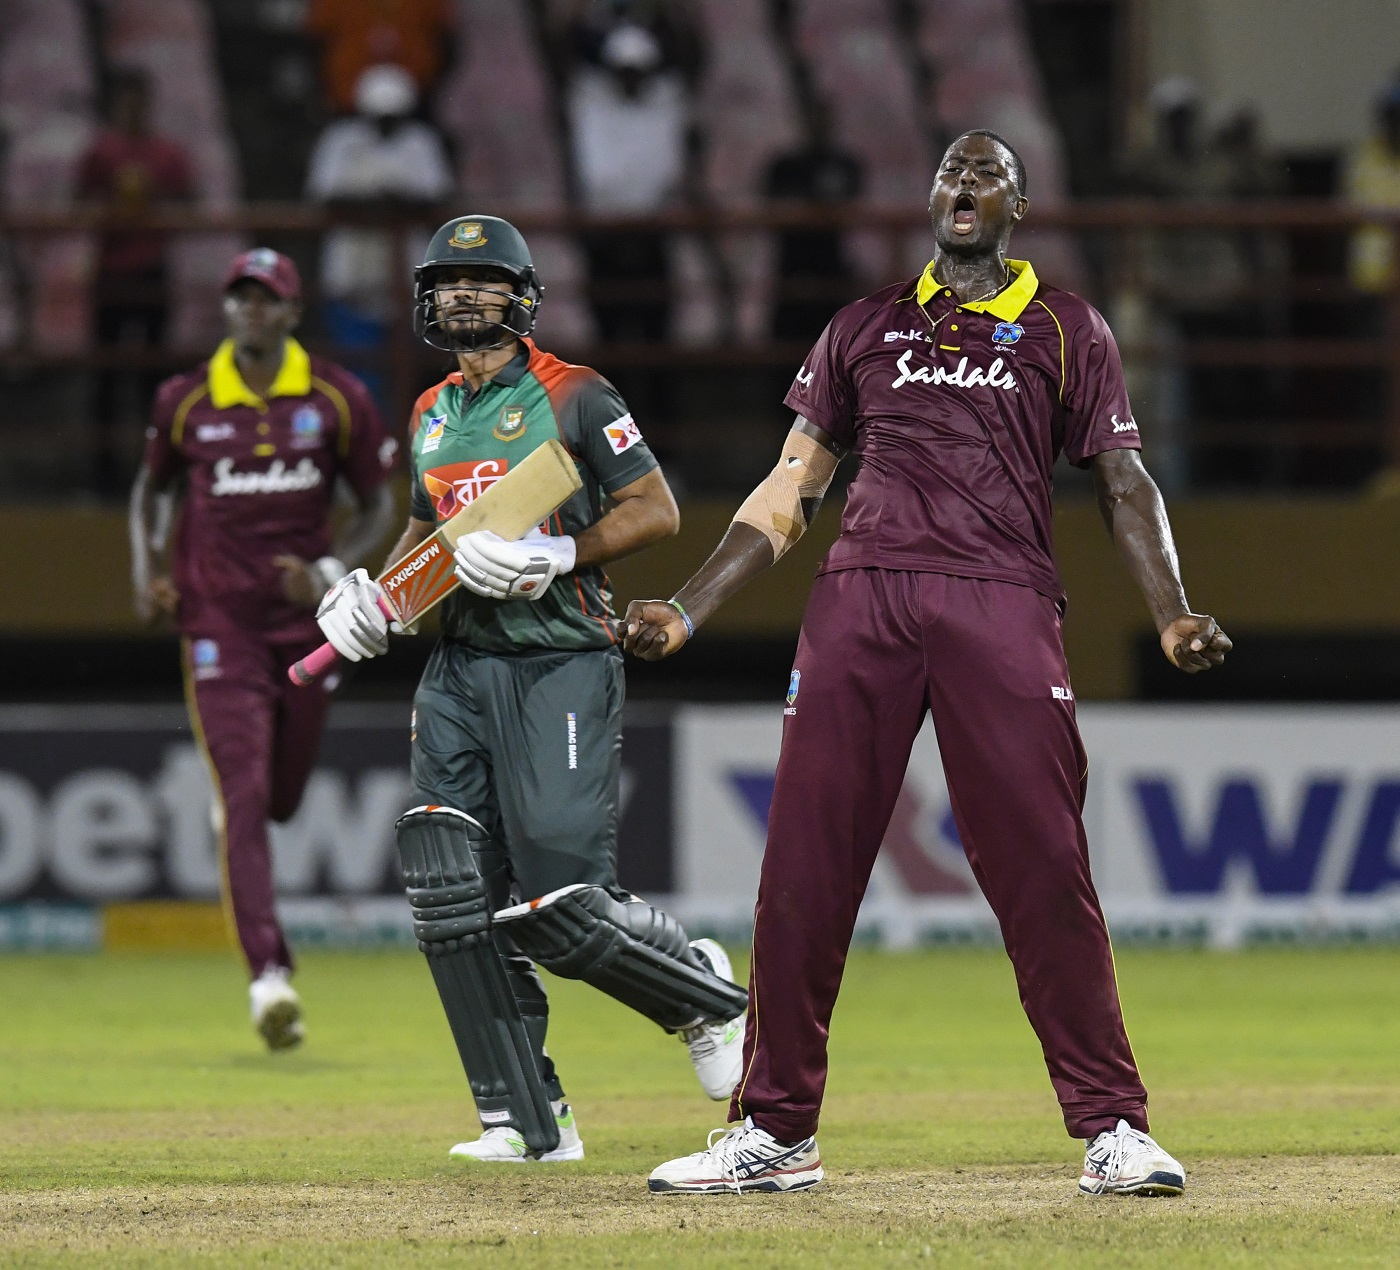 India vs West Indies 2018: West Indies Announce Squad For ODI and T20I Series